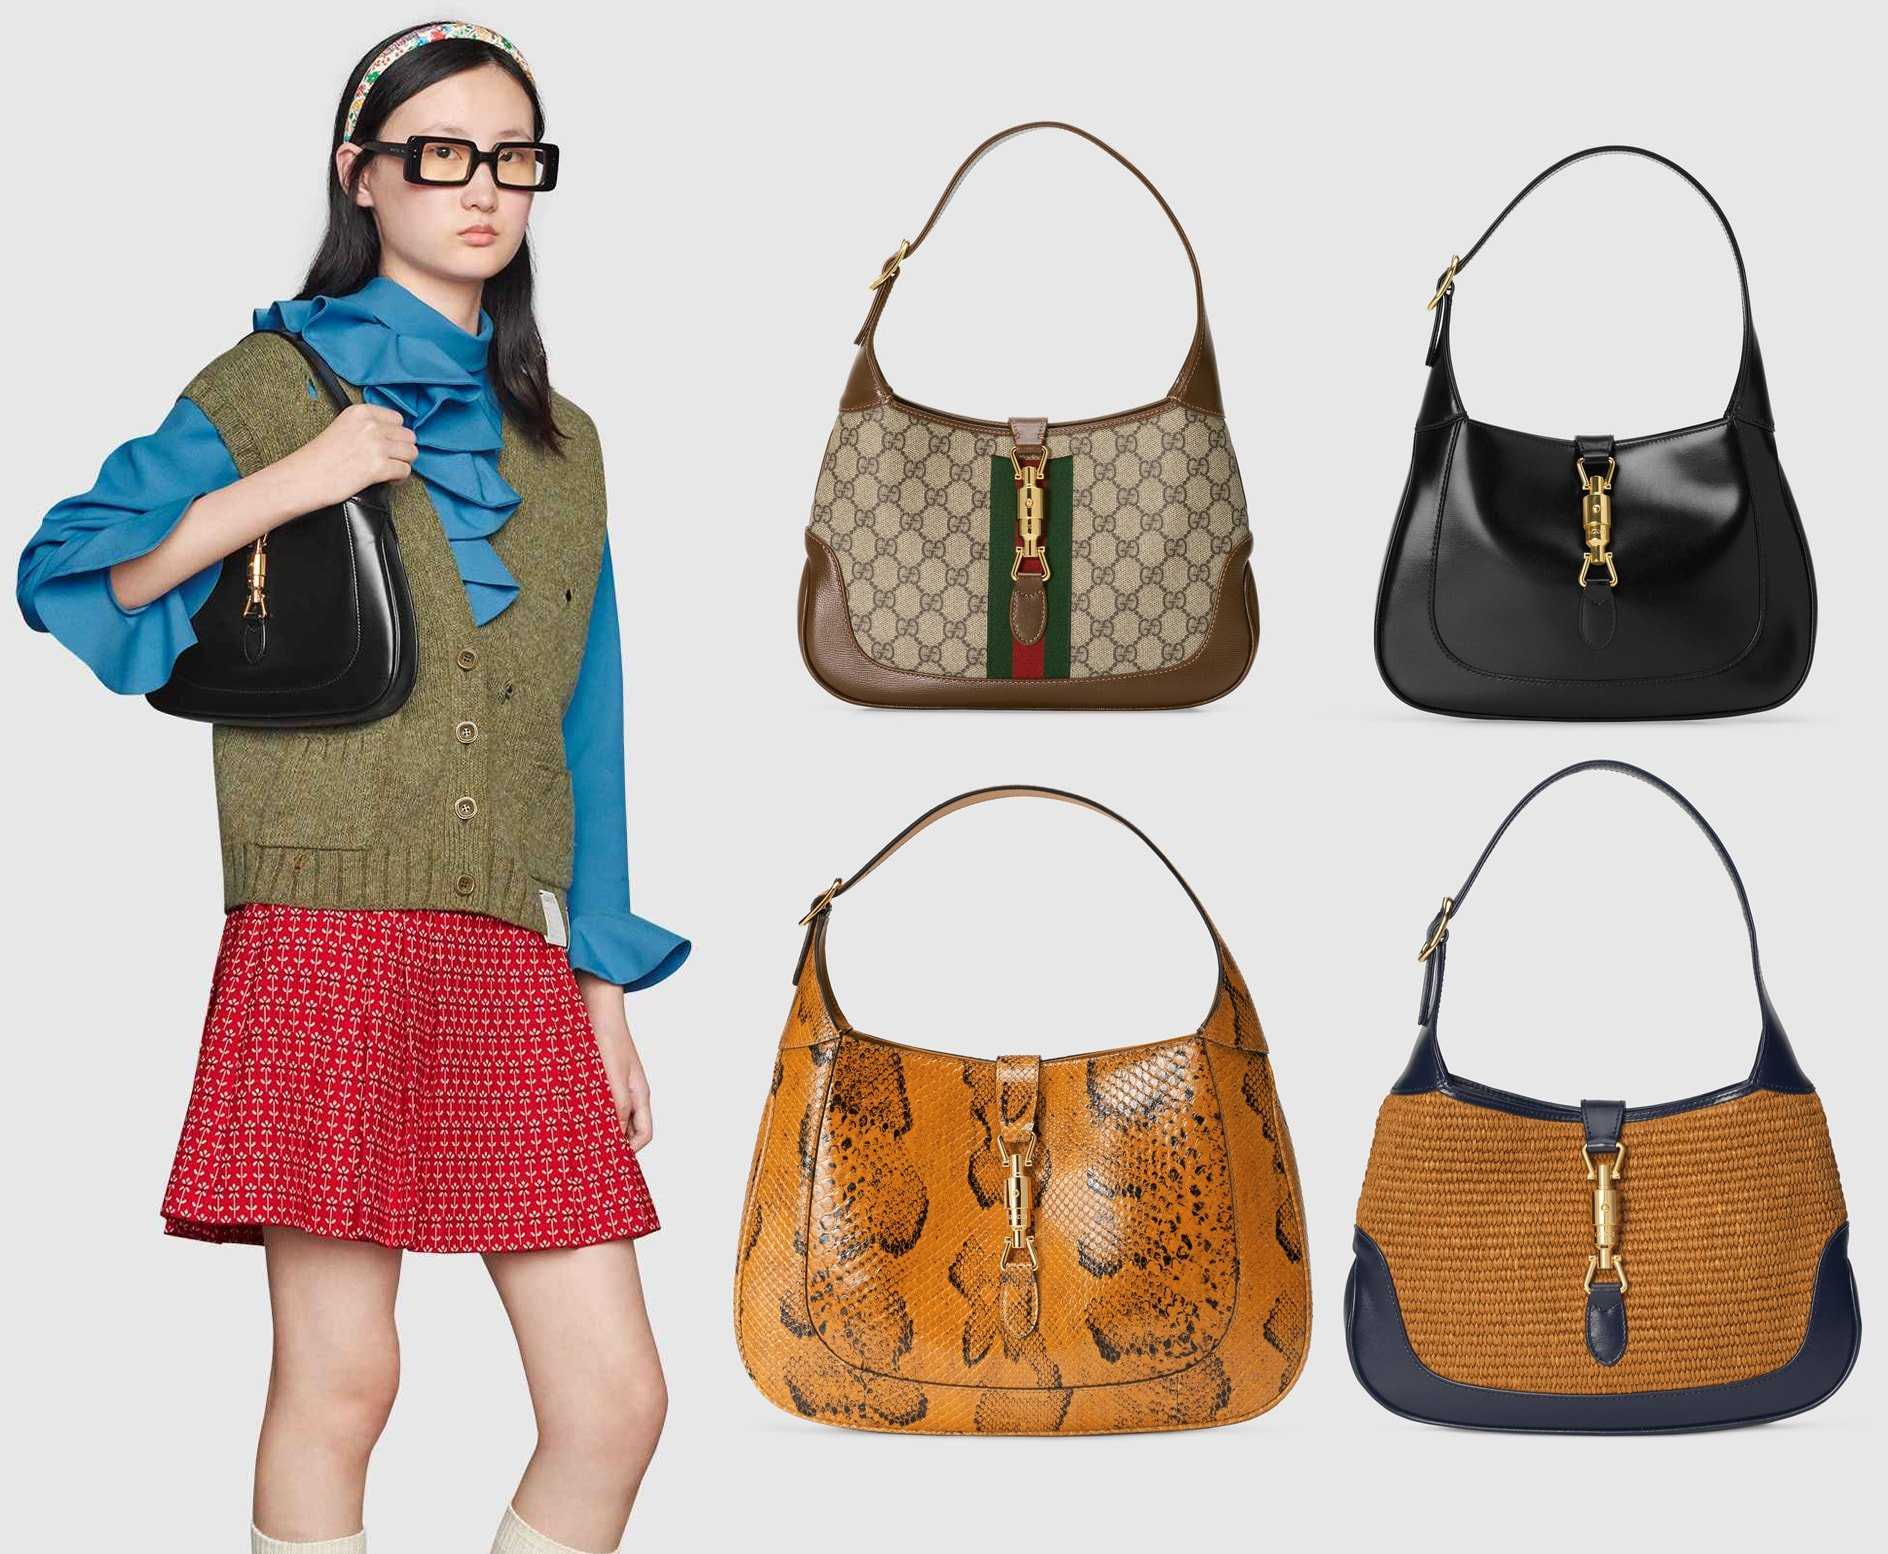 Named after Jackie Kennedy Onassis, Gucci's Jackie hobo bag is an archival style that has been given a contemporary feel